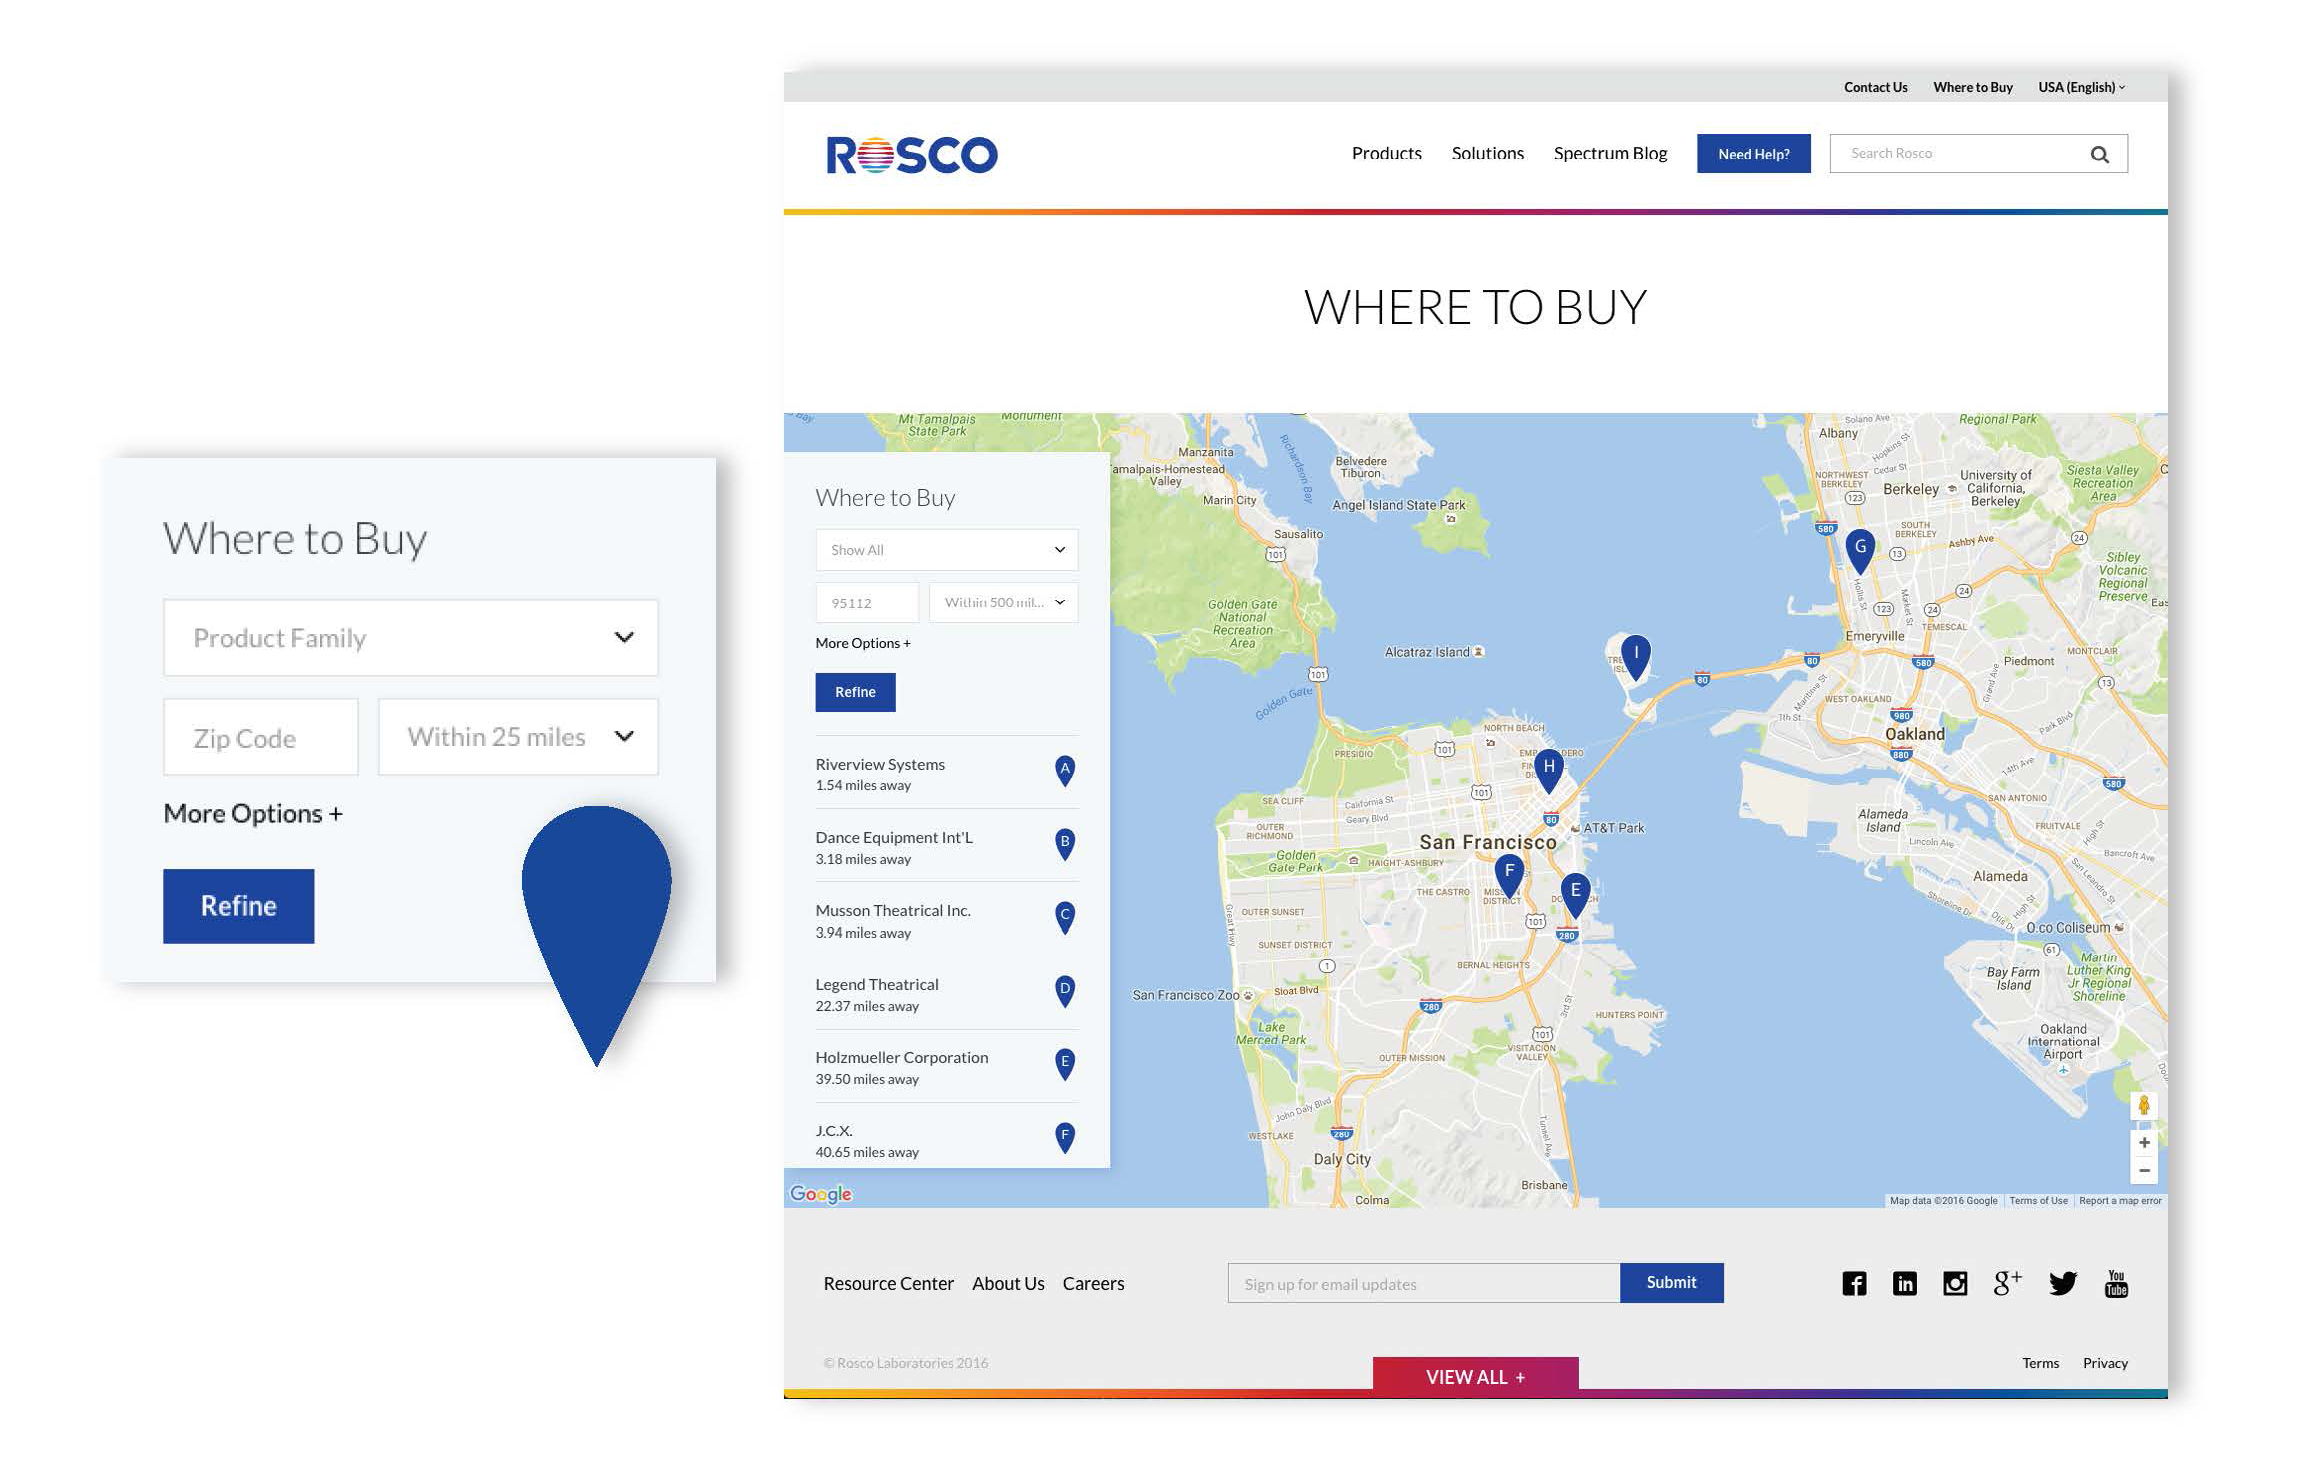 Rosco Website Redesign - Where to Buy